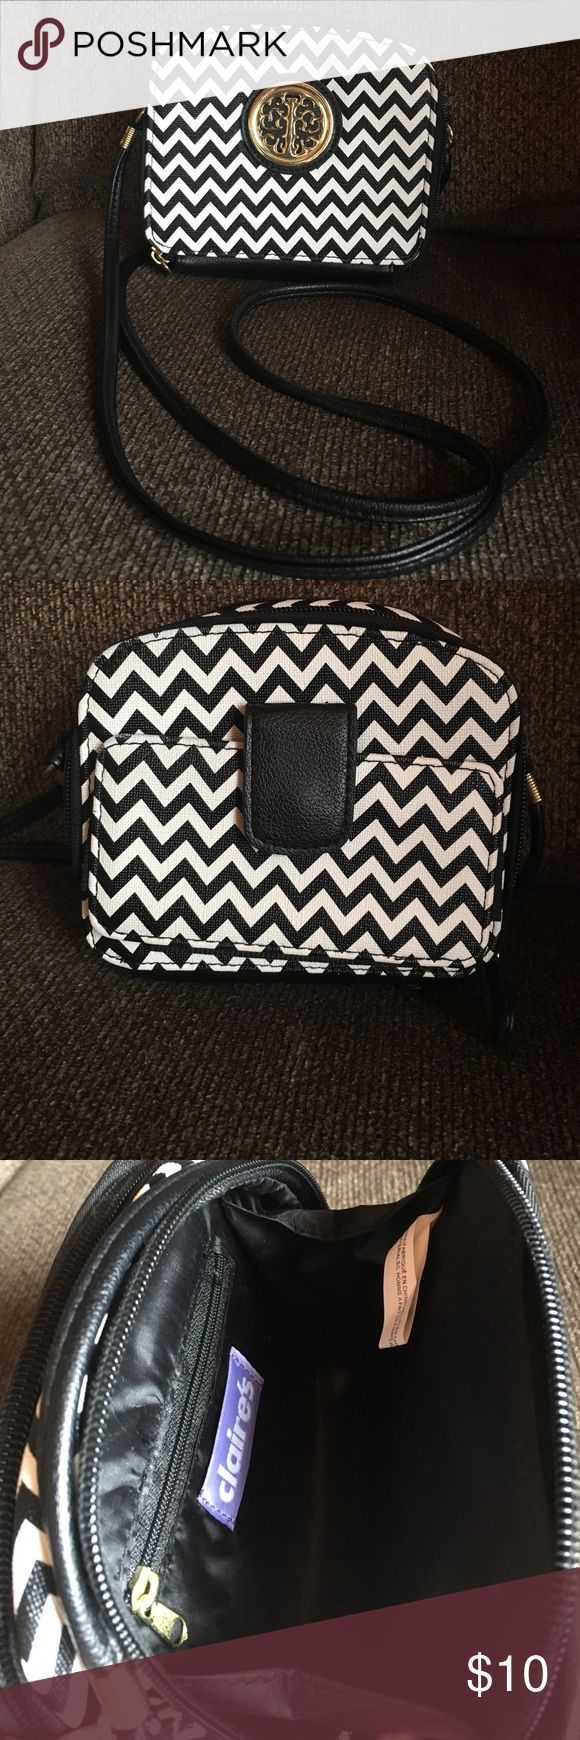 LIKE NEW! Crossbody black and white chevron purse LIKE NEW! Cute cross body black and white chevron purse. Only used for one week last year in Vegas! 🎲🎲 Bags Crossbody Bags